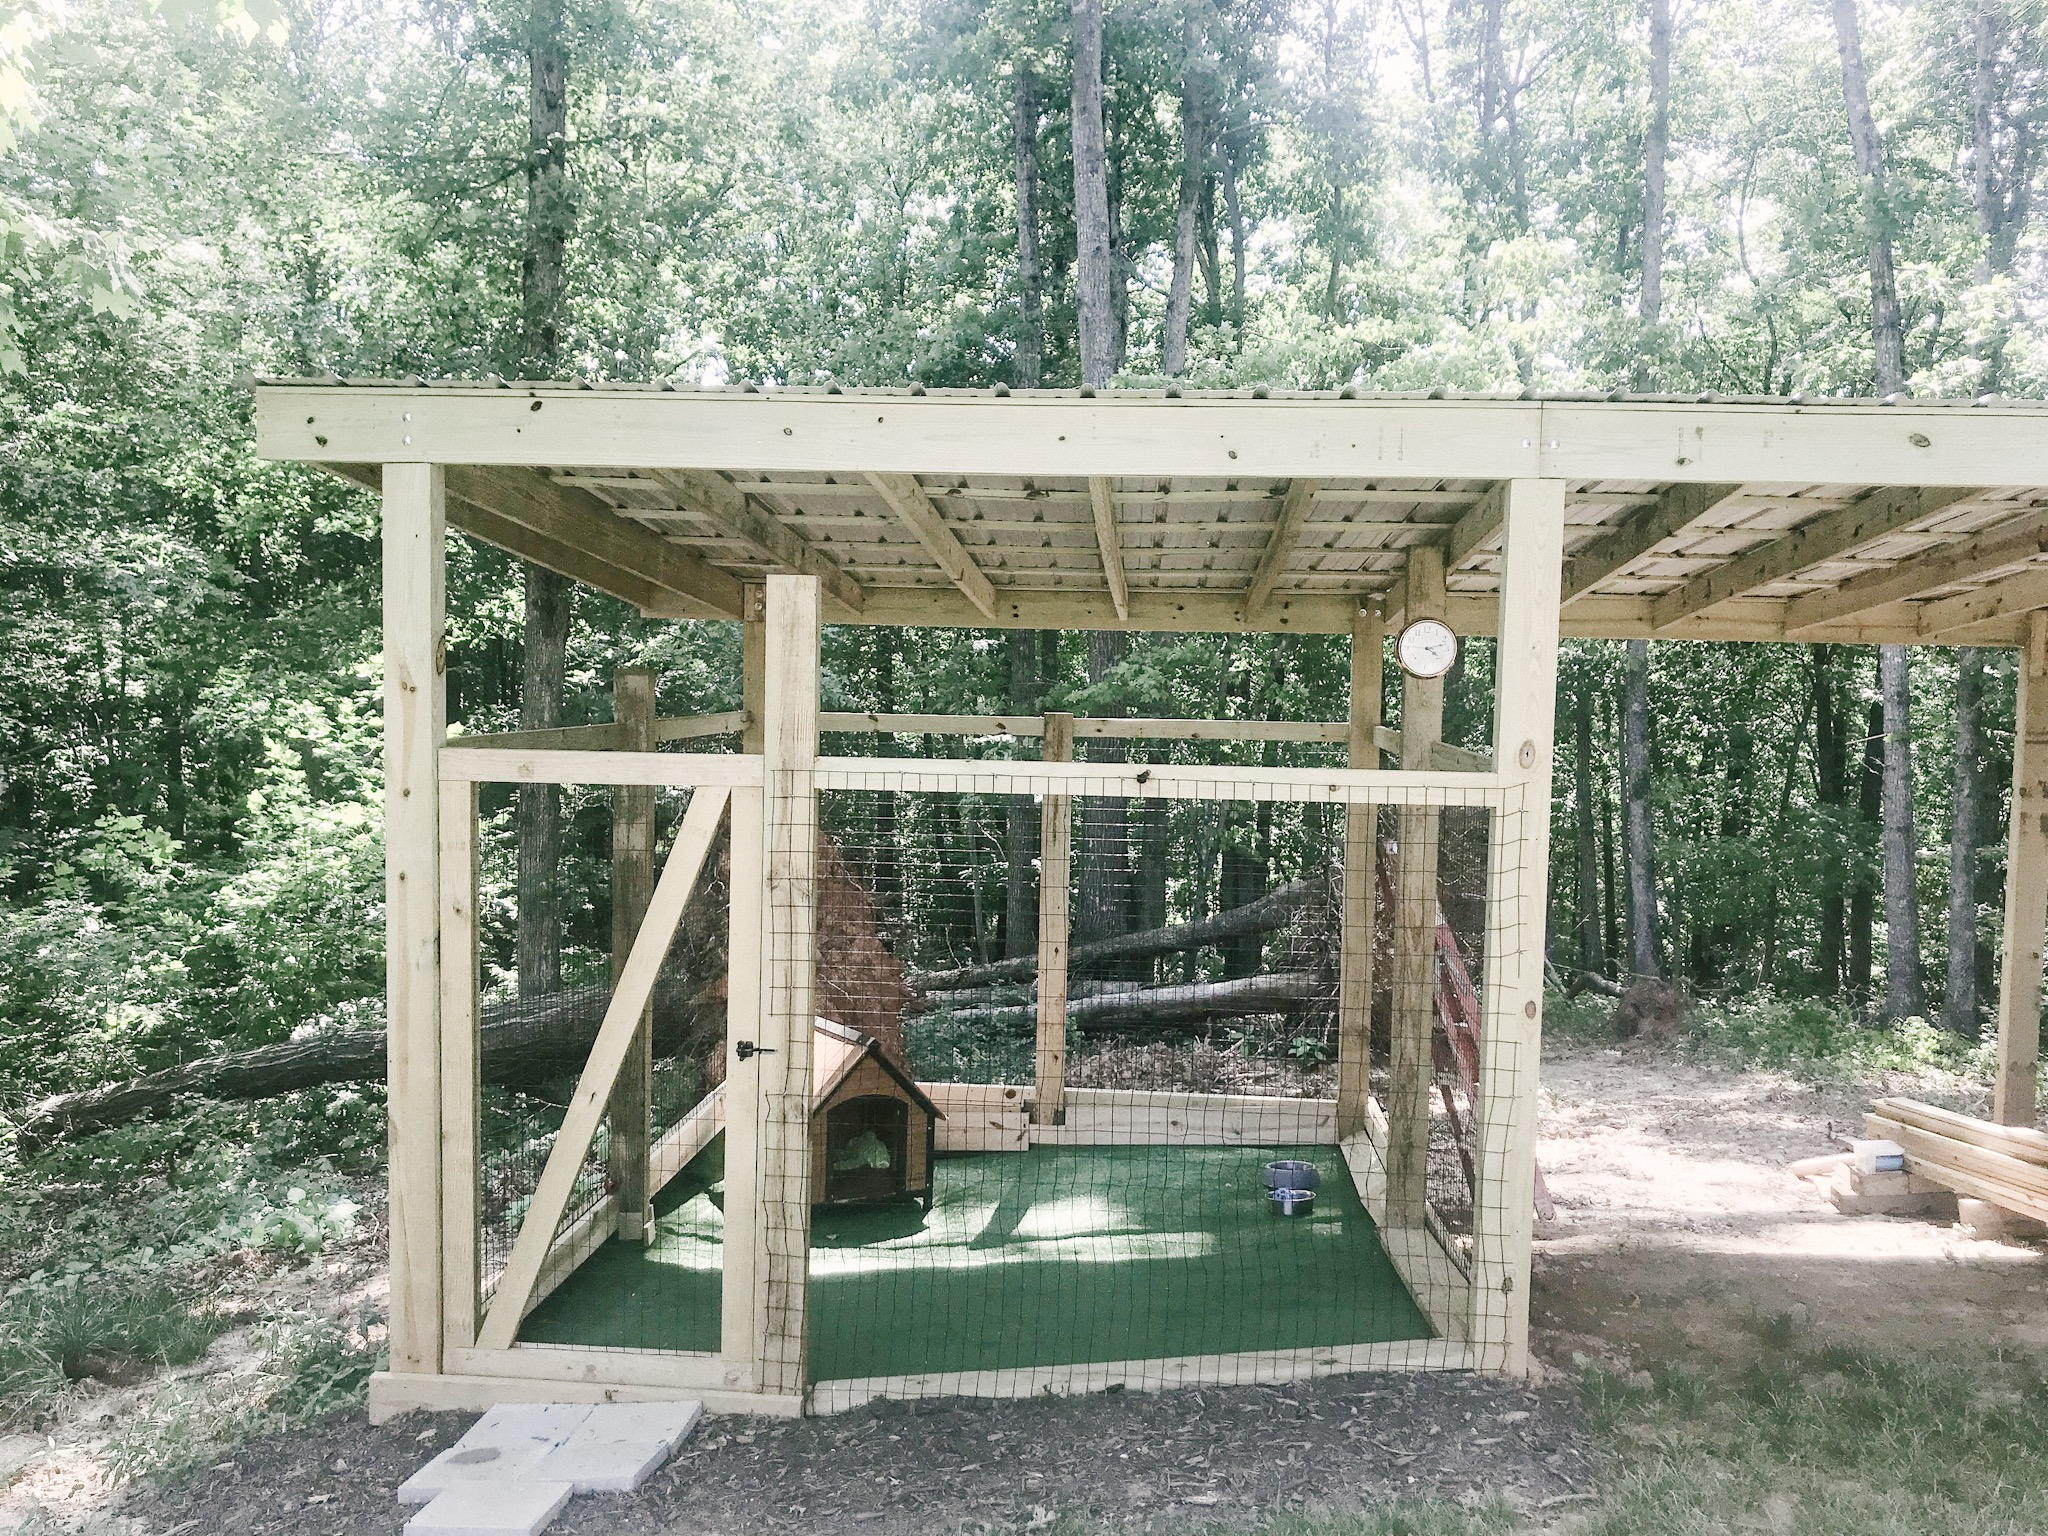 How to build an outdoor dog lot